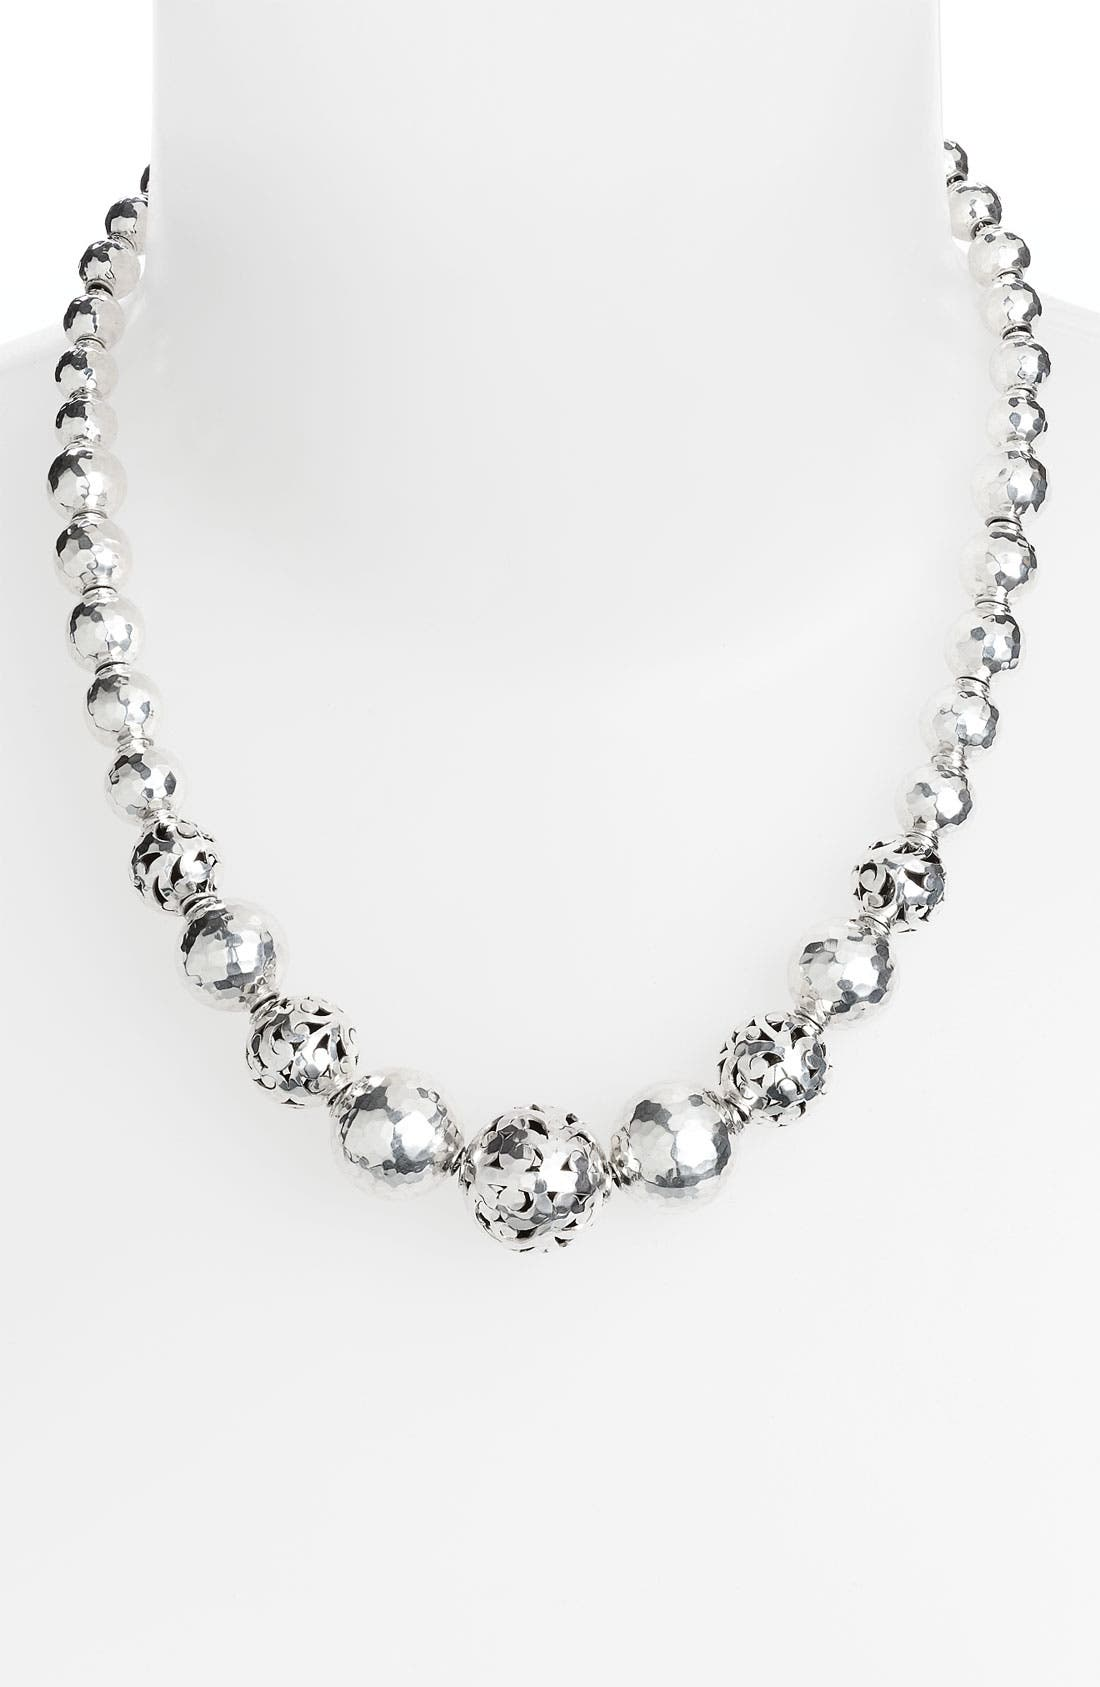 Alternate Image 1 Selected - Lois Hill 'Ball & Chain' Graduated Hammered Bead Necklace